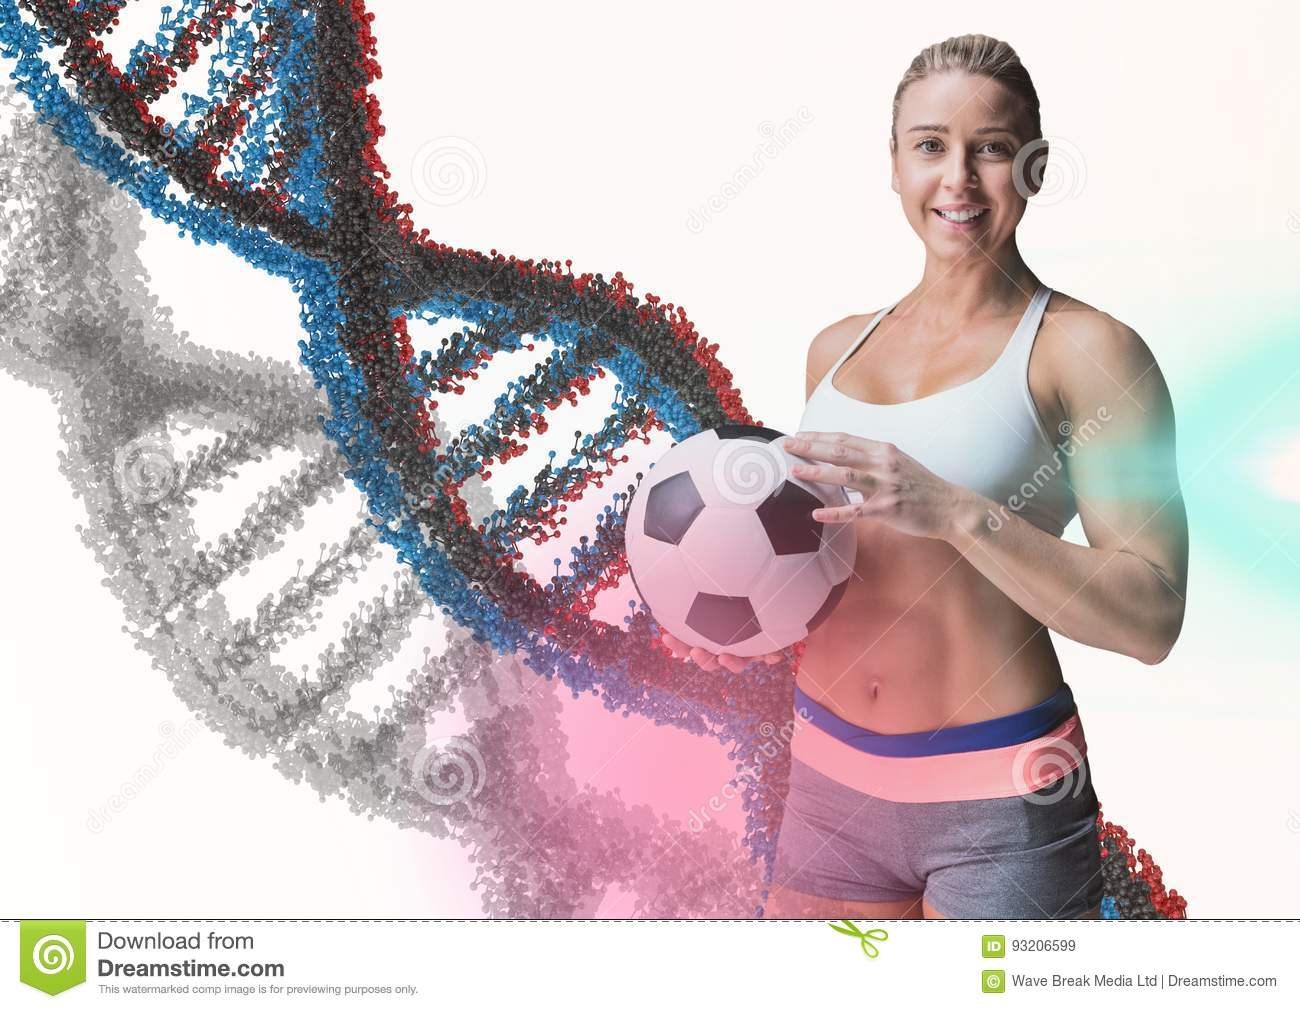 Woman with soccer ball with blue, grey and red dna chain in a white background and some flares